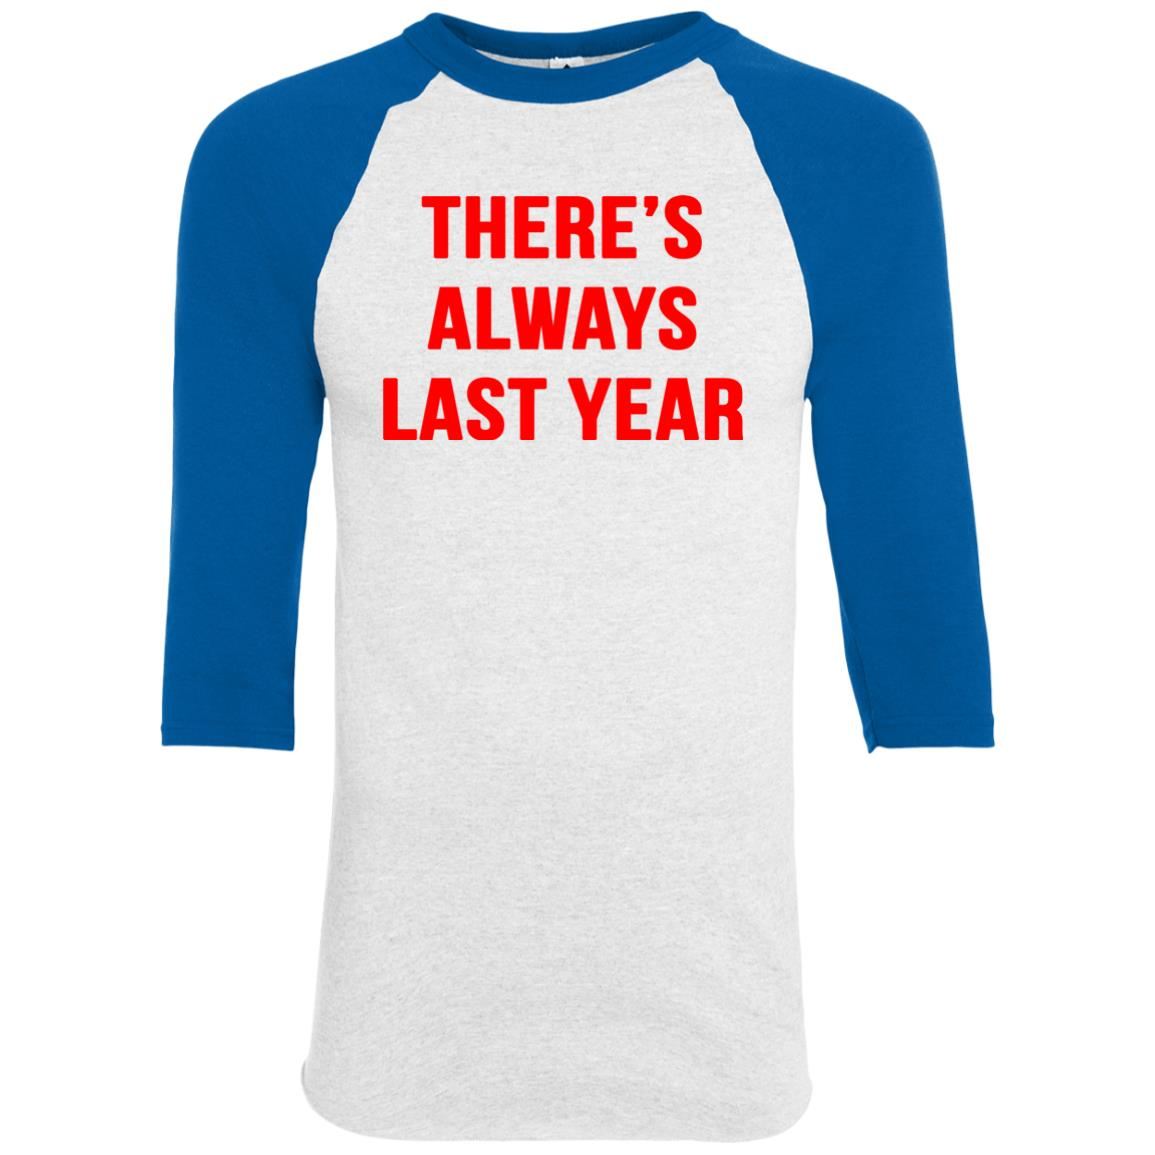 image 1917 - There's always last year t-shirt, long sleeve